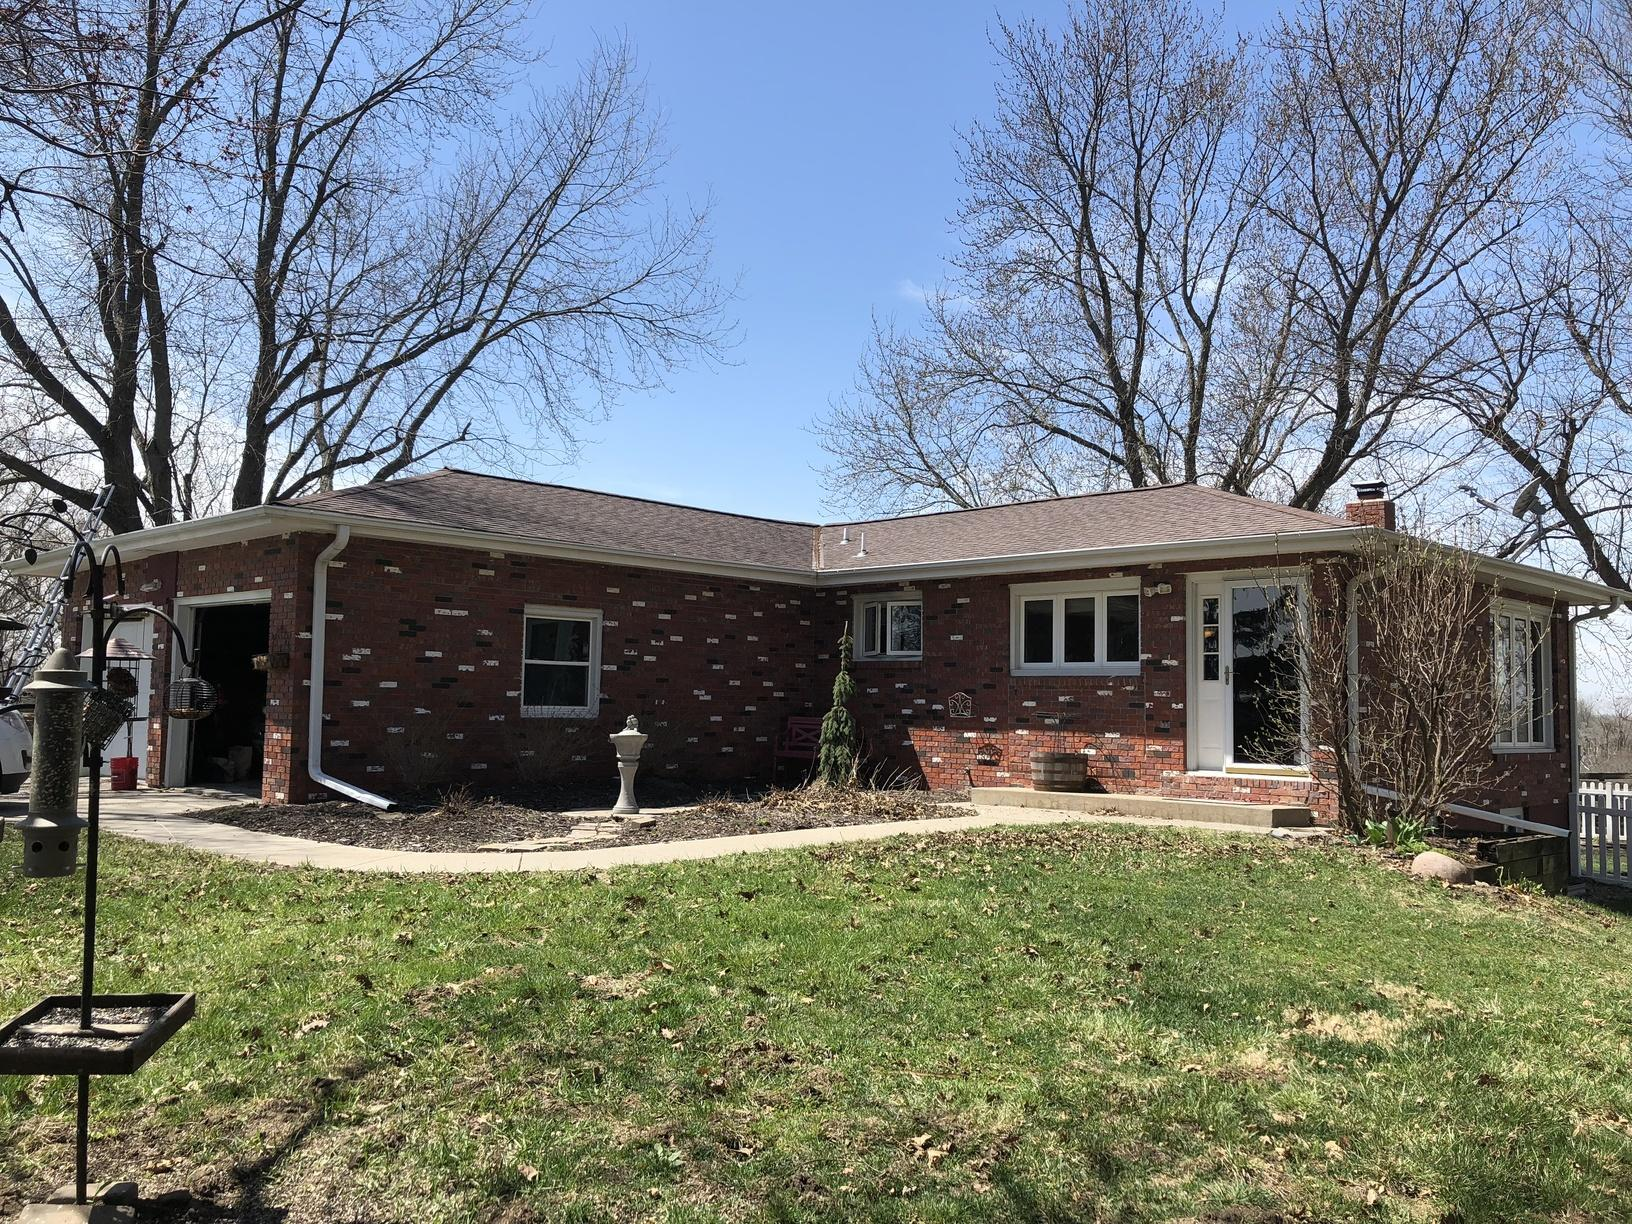 Clogged Gutters Replaced on Brick Home in Glenwood, IA - Before Photo